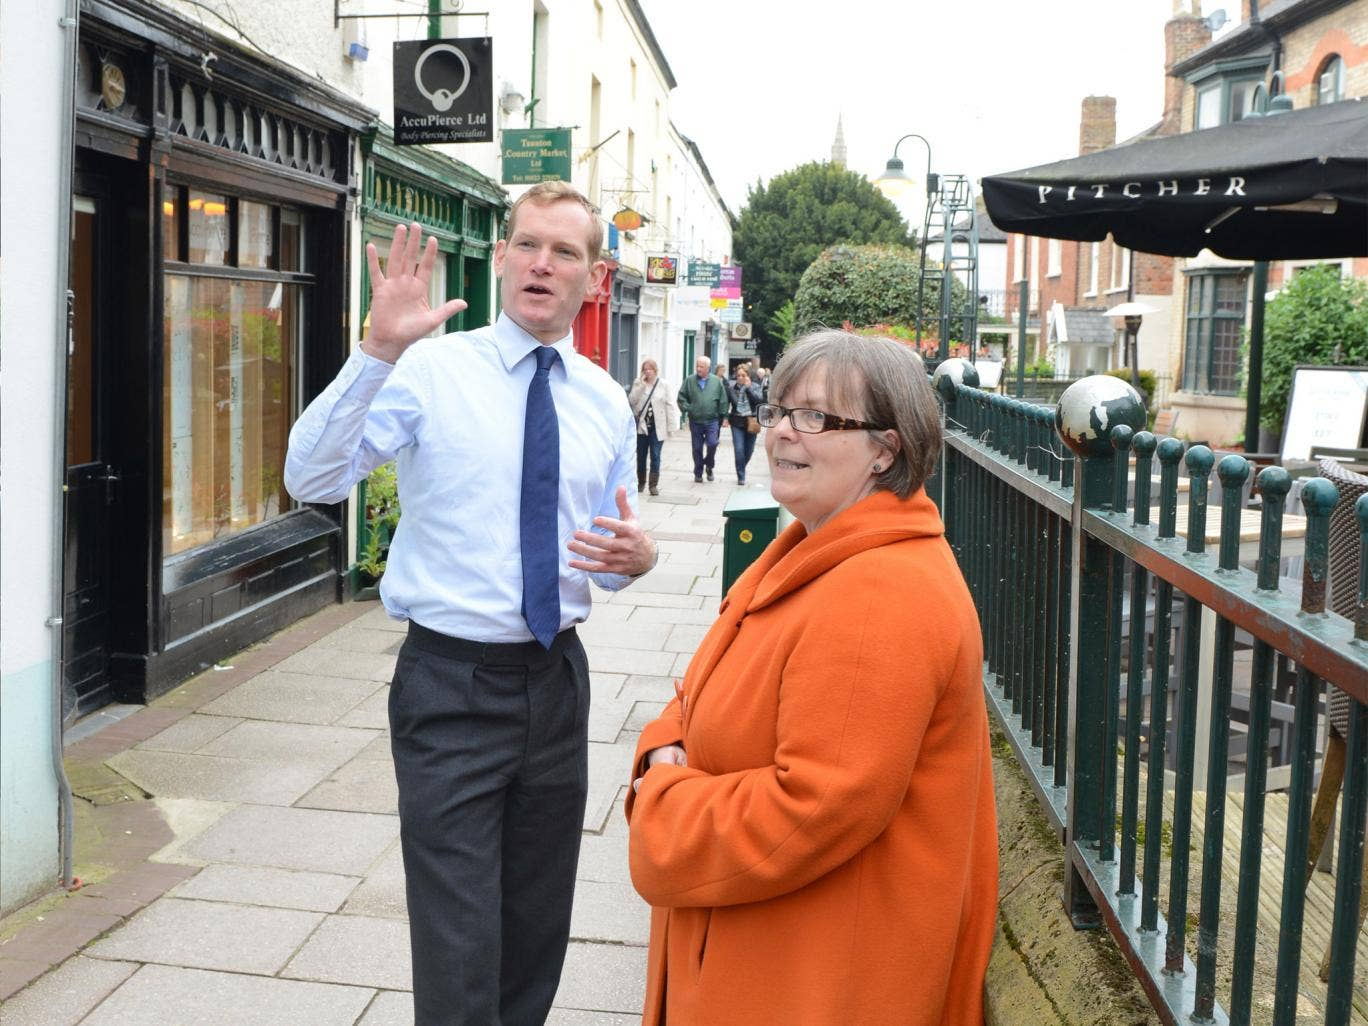 Taunton's Liberal Democrat MP Jeremy Browne, a former minister in the Coalition, has held his seat in the Somerset constituency since 2005